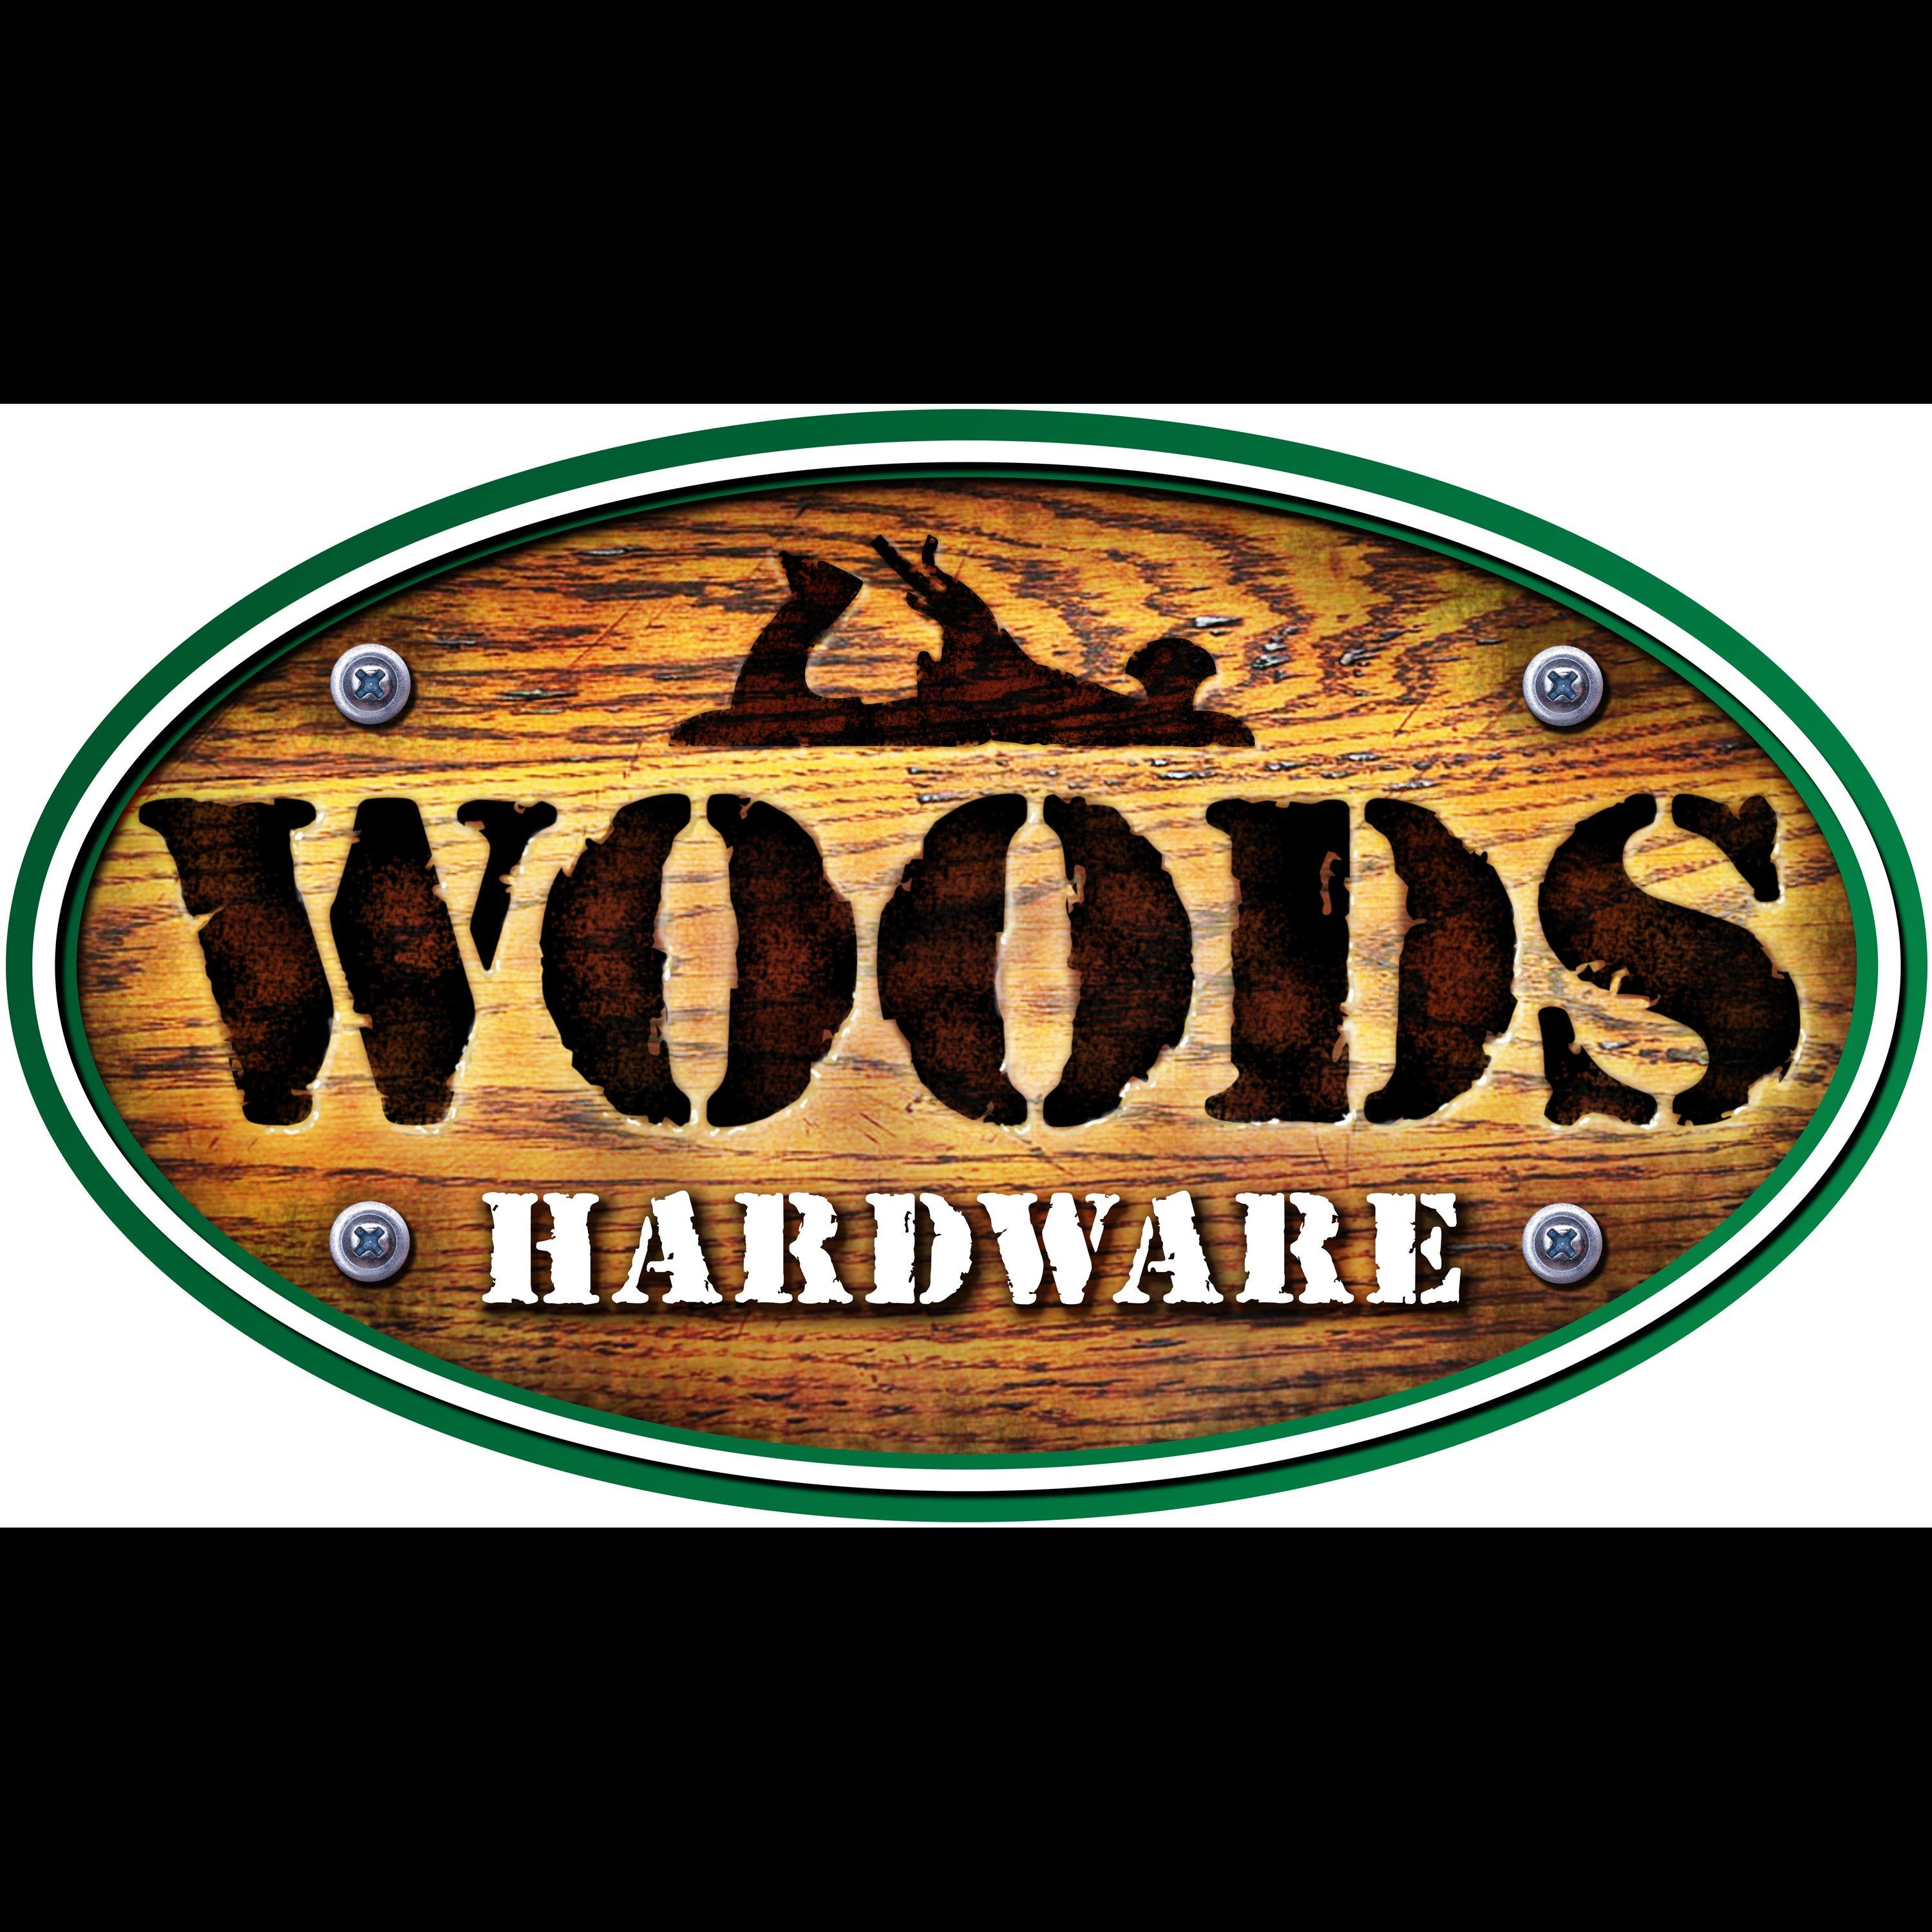 Woods Hardware of Harrison